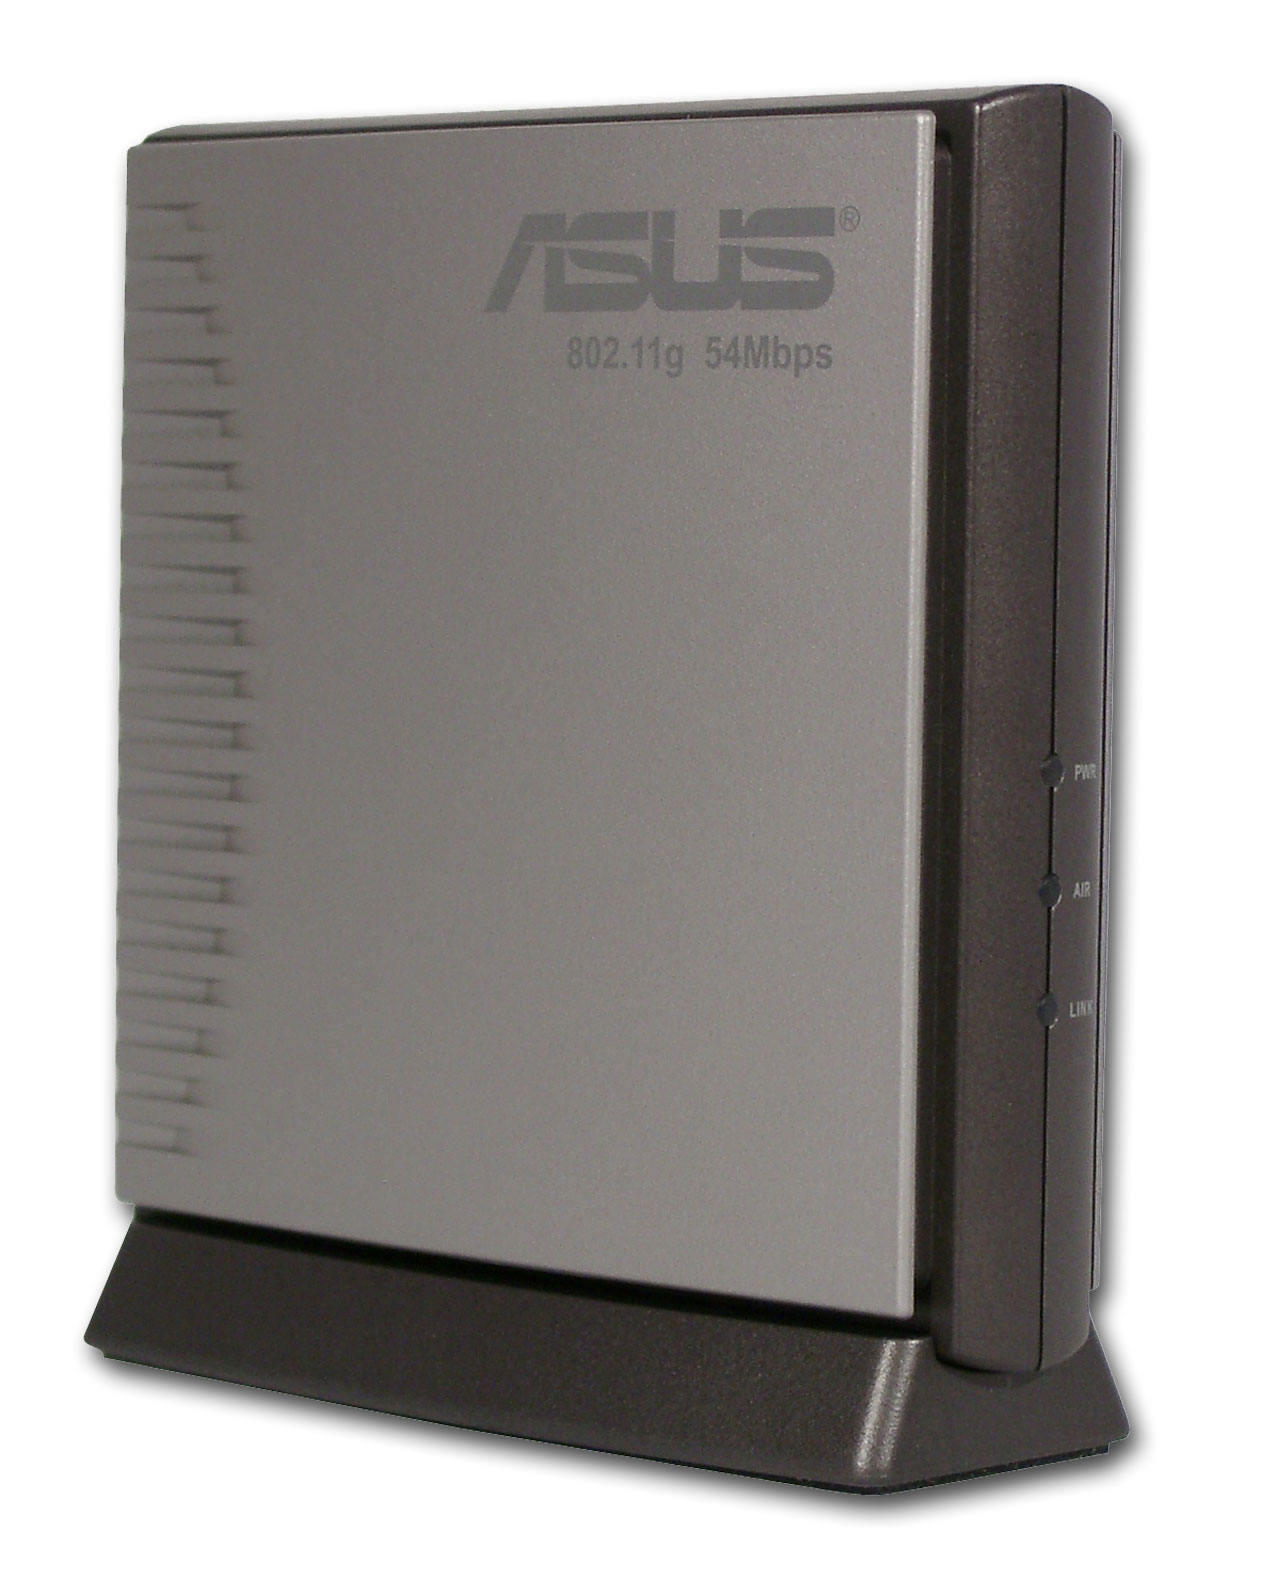 ASUS WL-300G DRIVER FOR WINDOWS 8